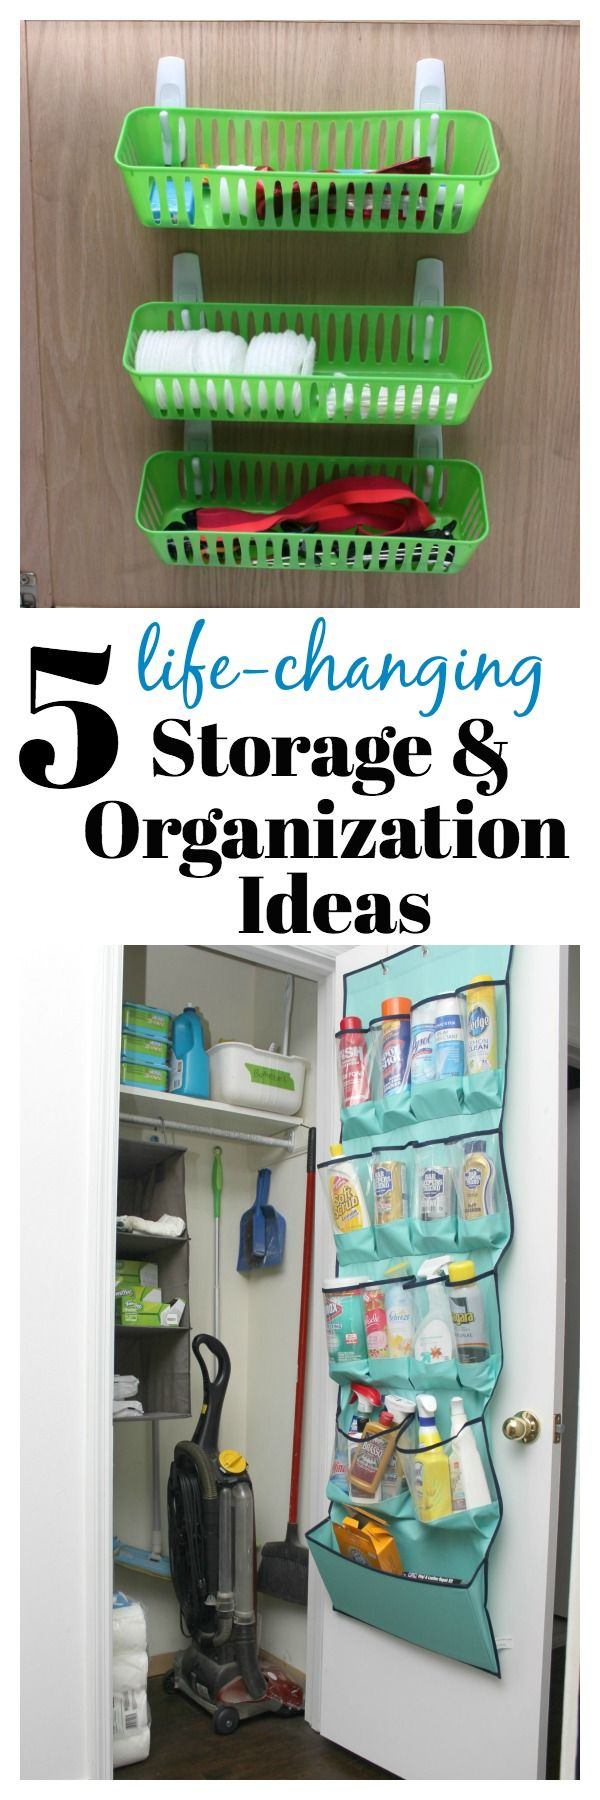 Perfect Simple Storage And Organization Ideas For The Home | Storage Ideas | Storage  Solutions | Organization Ideas For Home Clutter